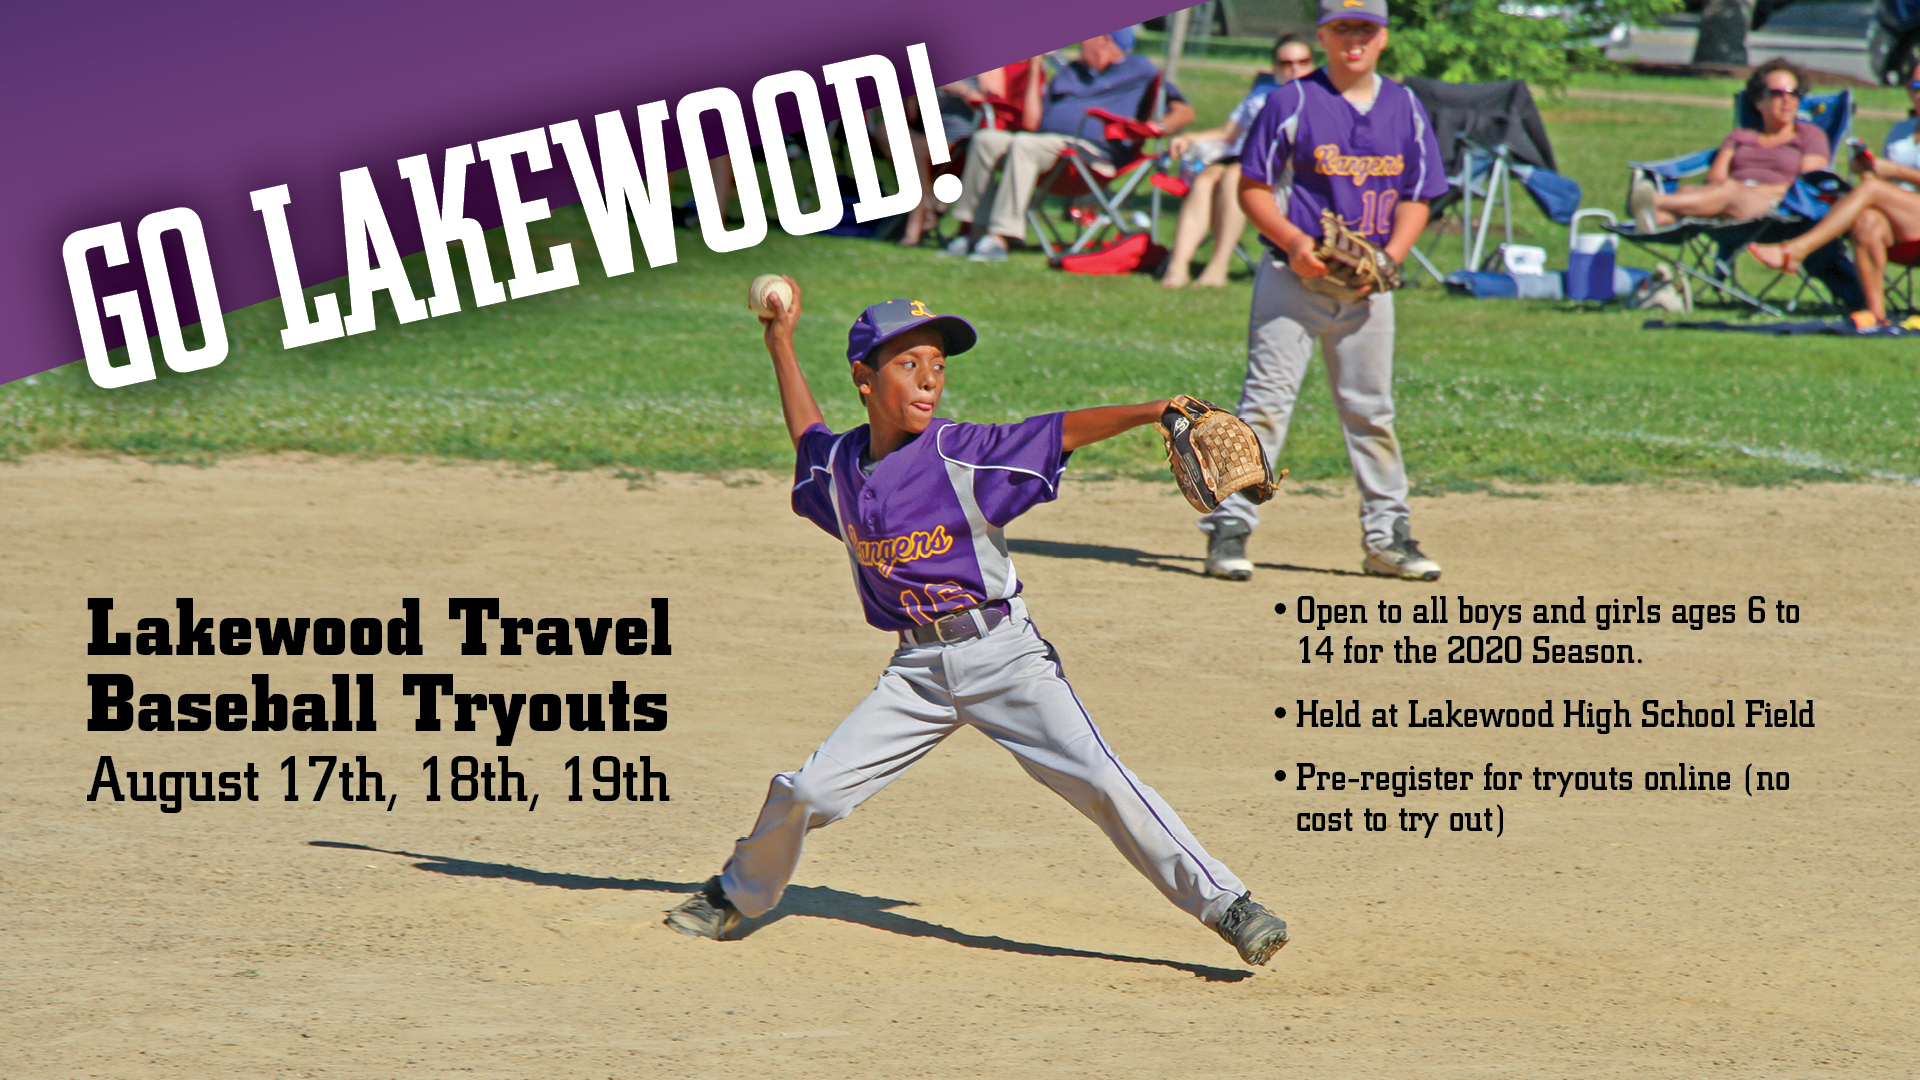 Lakewood Travel Baseball Tryouts for 2020